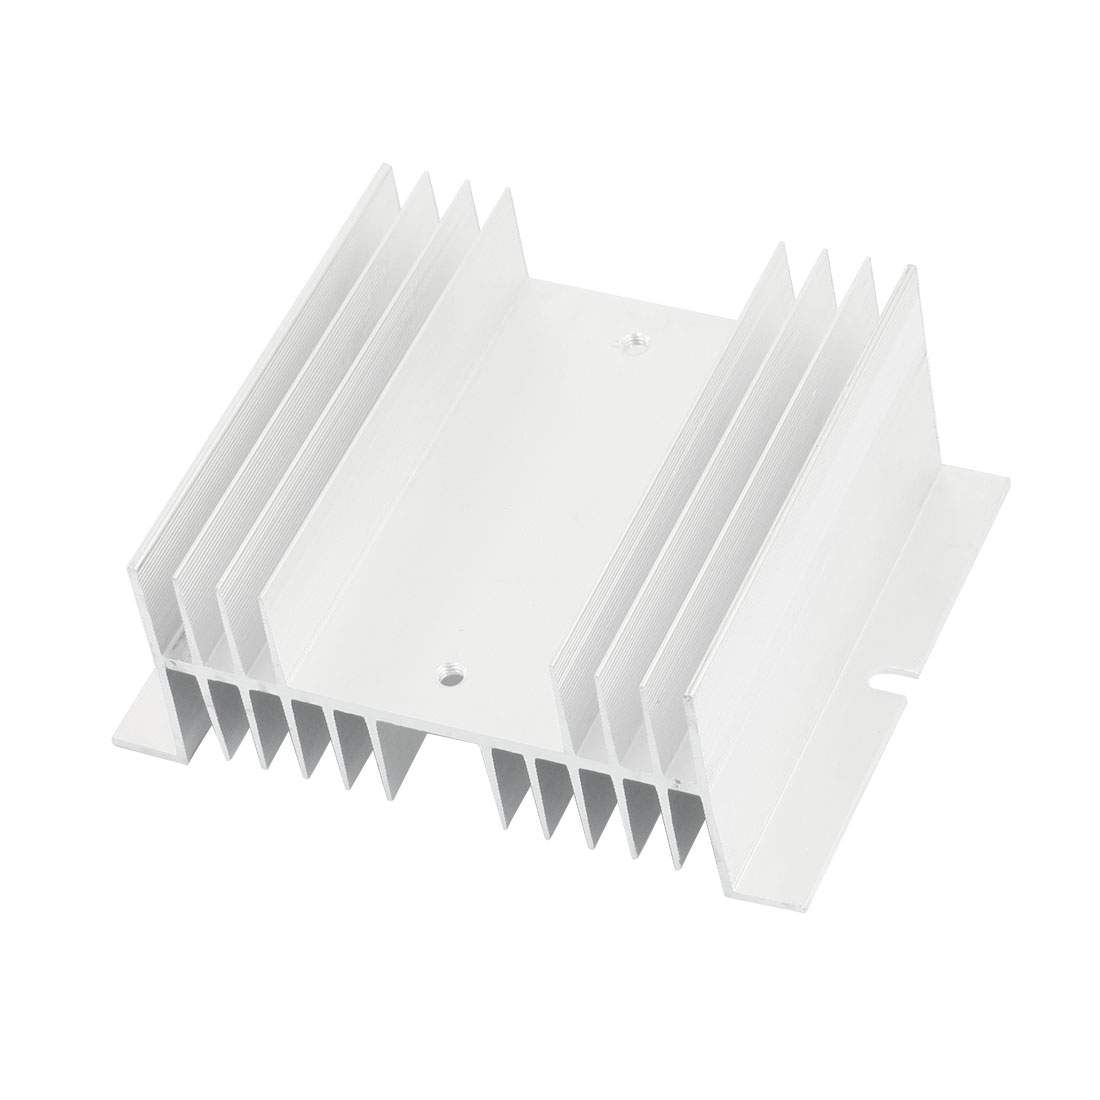 Silver Tone Aluminum Heat Dissipation Heatsink Cooling Fin for 100mm x 50mm Solid State Relay